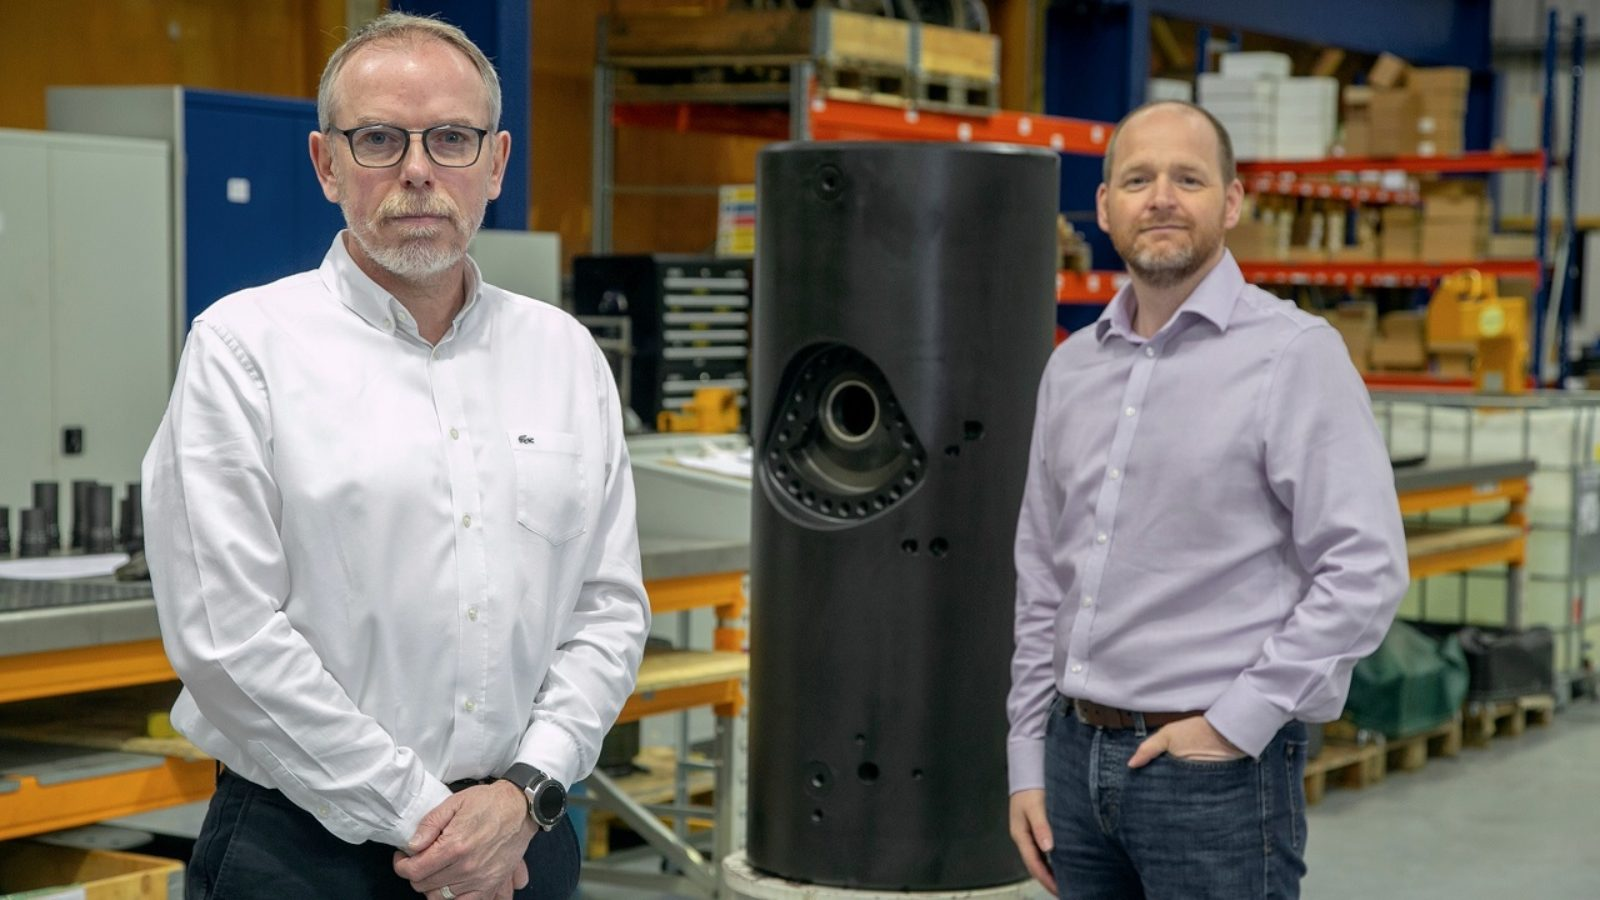 Gavin Cowie, managing director (L) and John Sangster, technical director (R) at Interventek